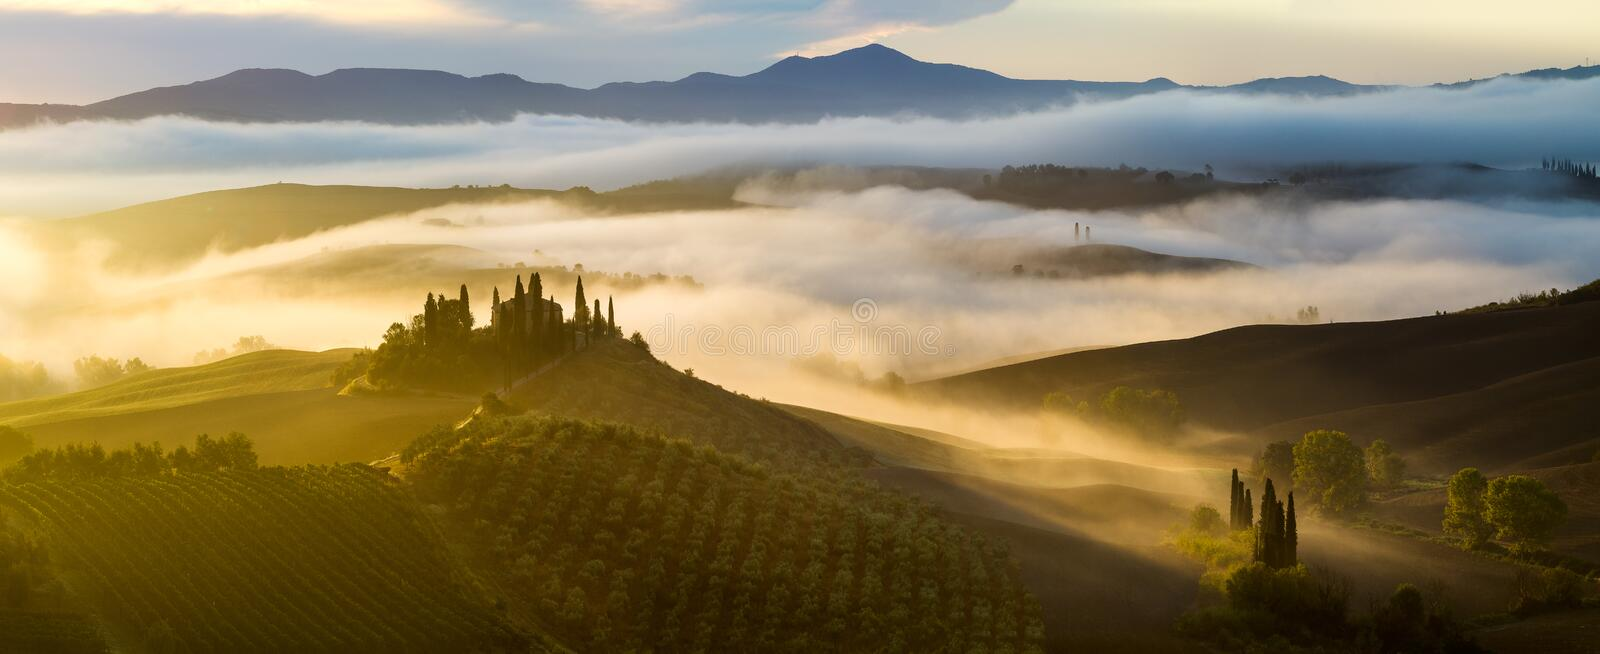 Misty, sunny morning in Tuscany royalty free stock photo